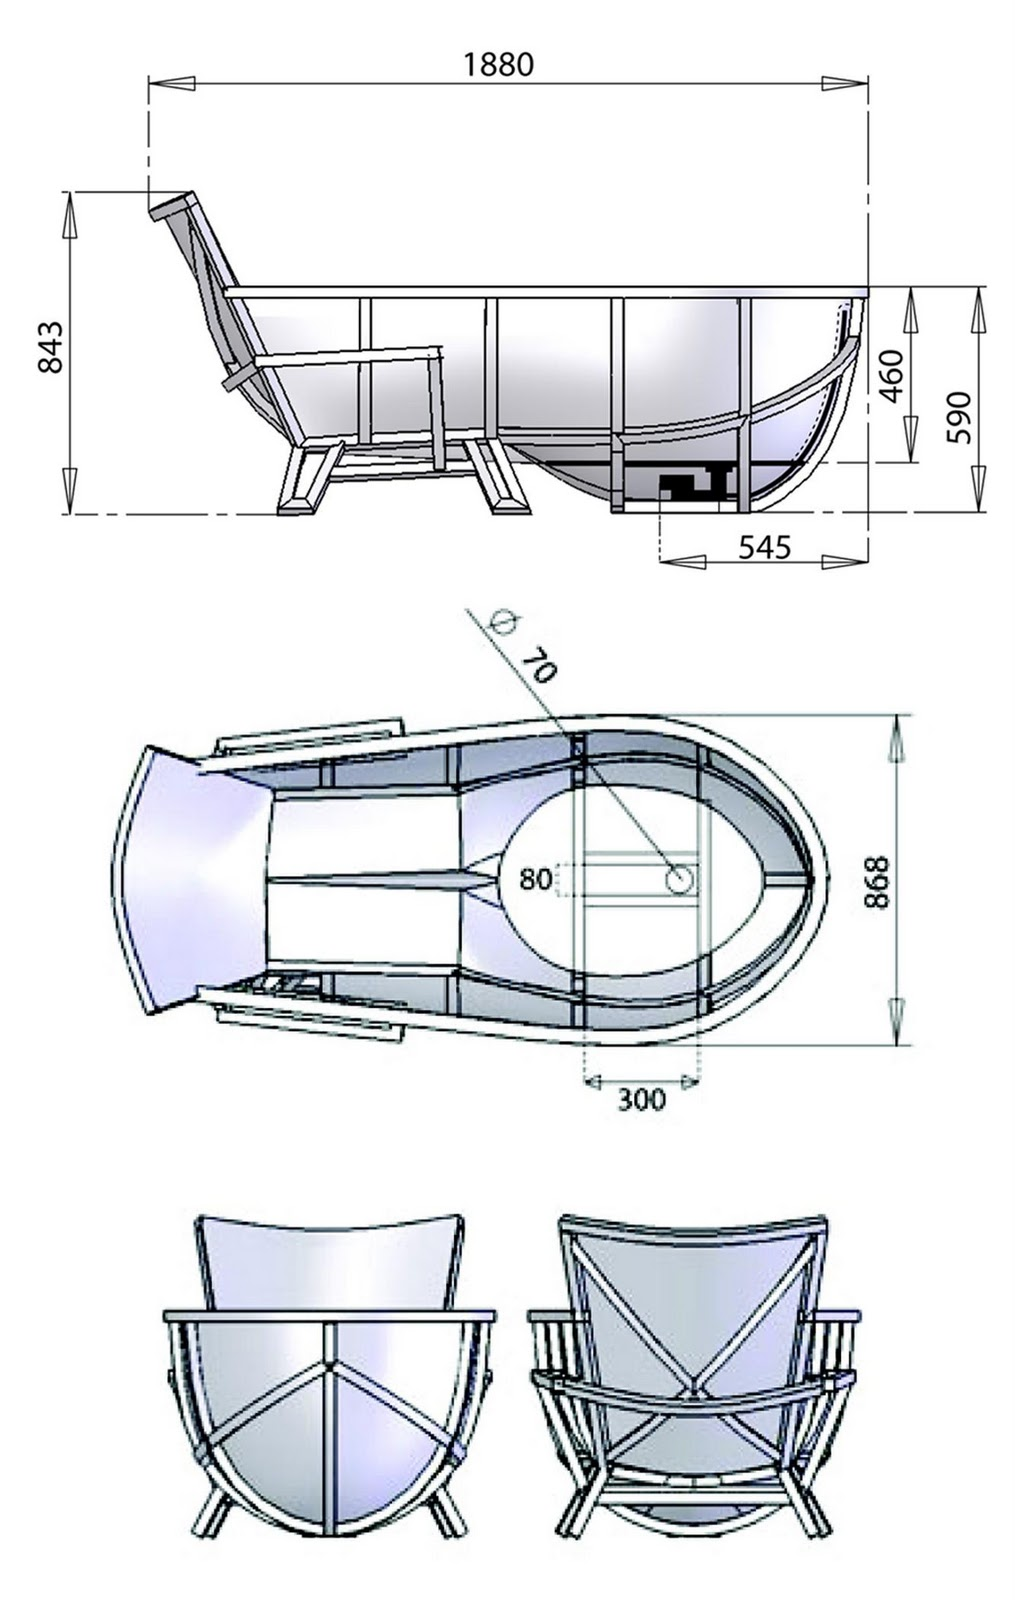 Bathtub Dimensions Submited Images Pic2Fly